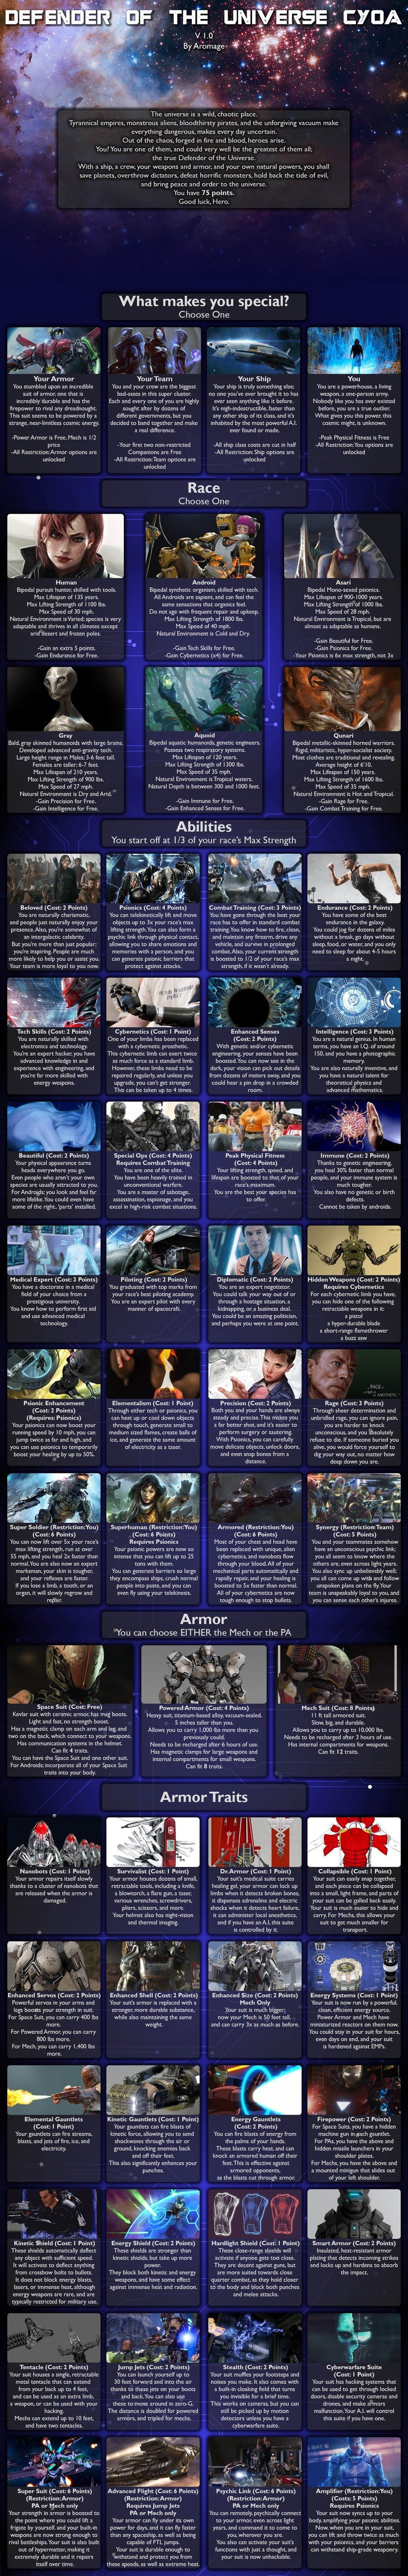 Defender of the Universe CYOA. .. Hey all! Back with my second CYOA! After this will be the Ultimate God CYOA,and after i post v1.0 of that, i'll work my way back and release 1.1 of this, and 2.